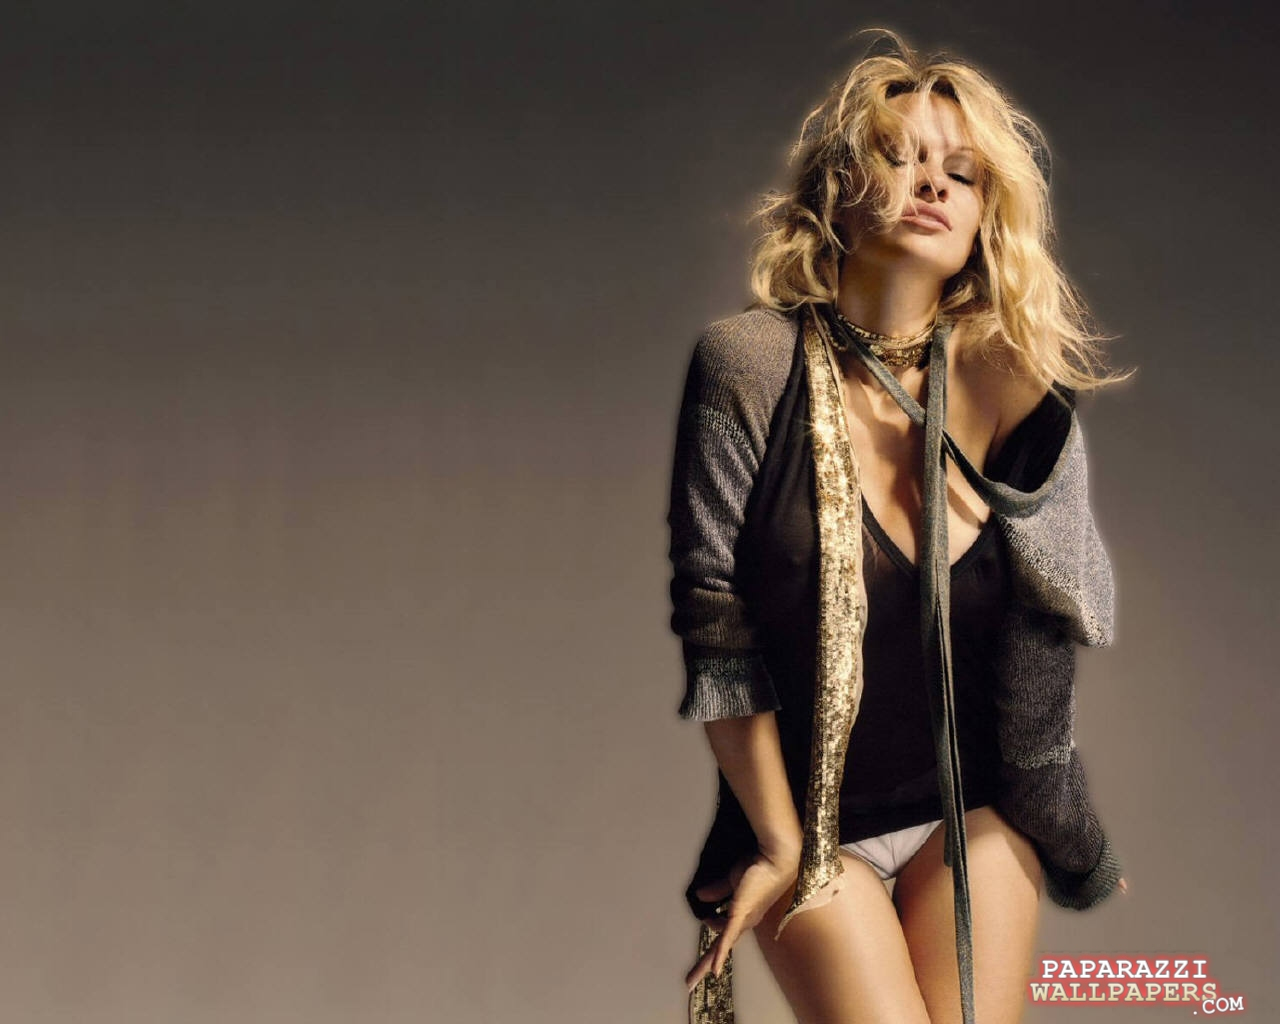 pamela anderson wallpapers 082